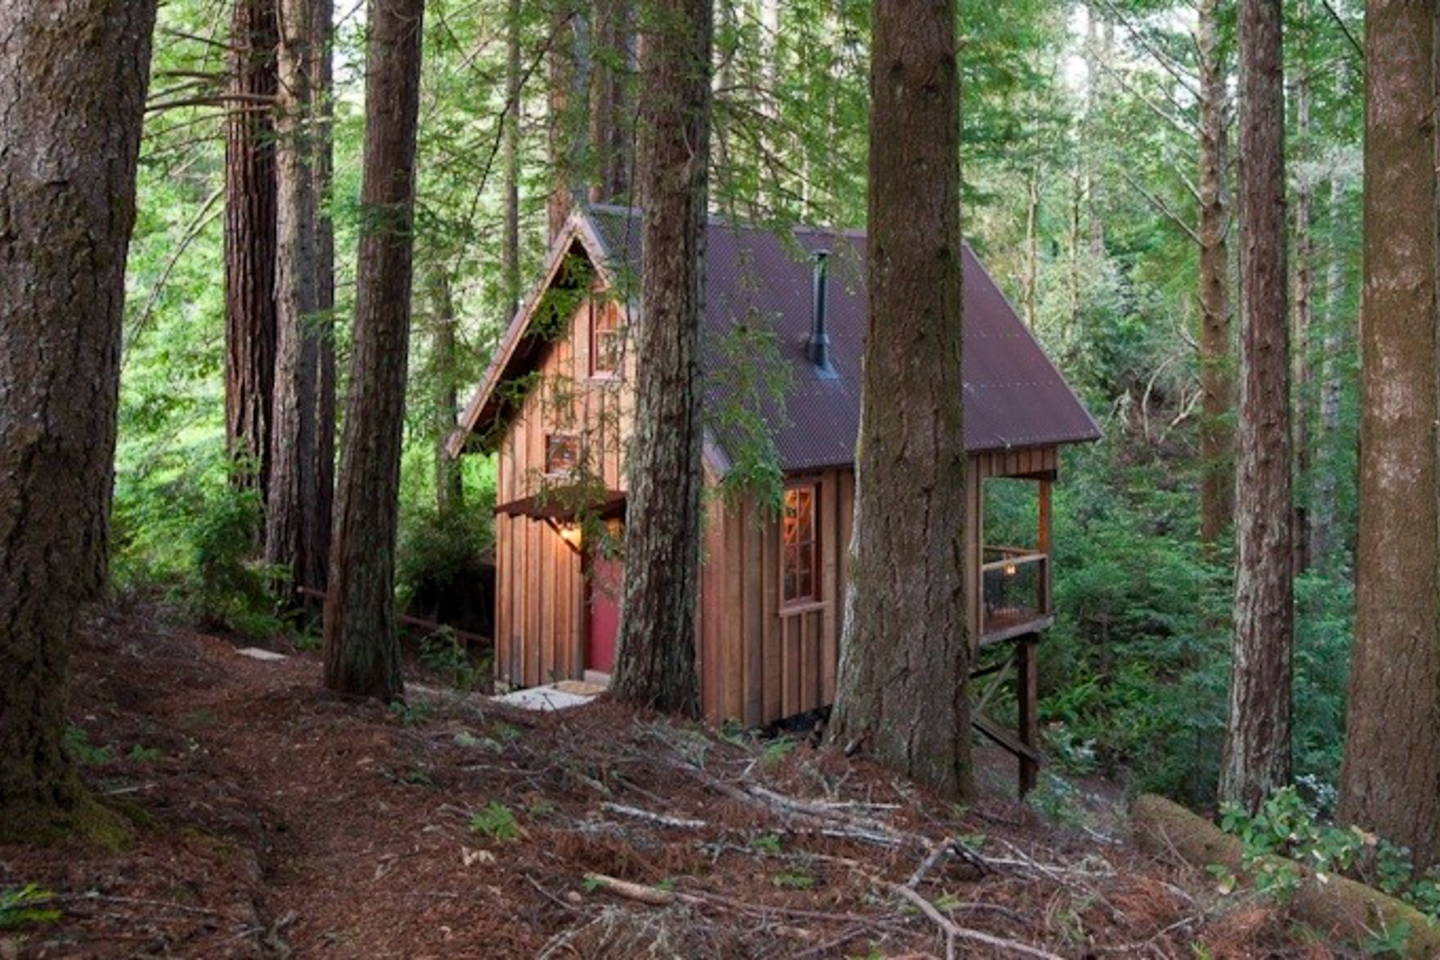 Perfect Owl Tree Cabin, A Tiny Cabin That Feels Like A Treehouse. It Has A